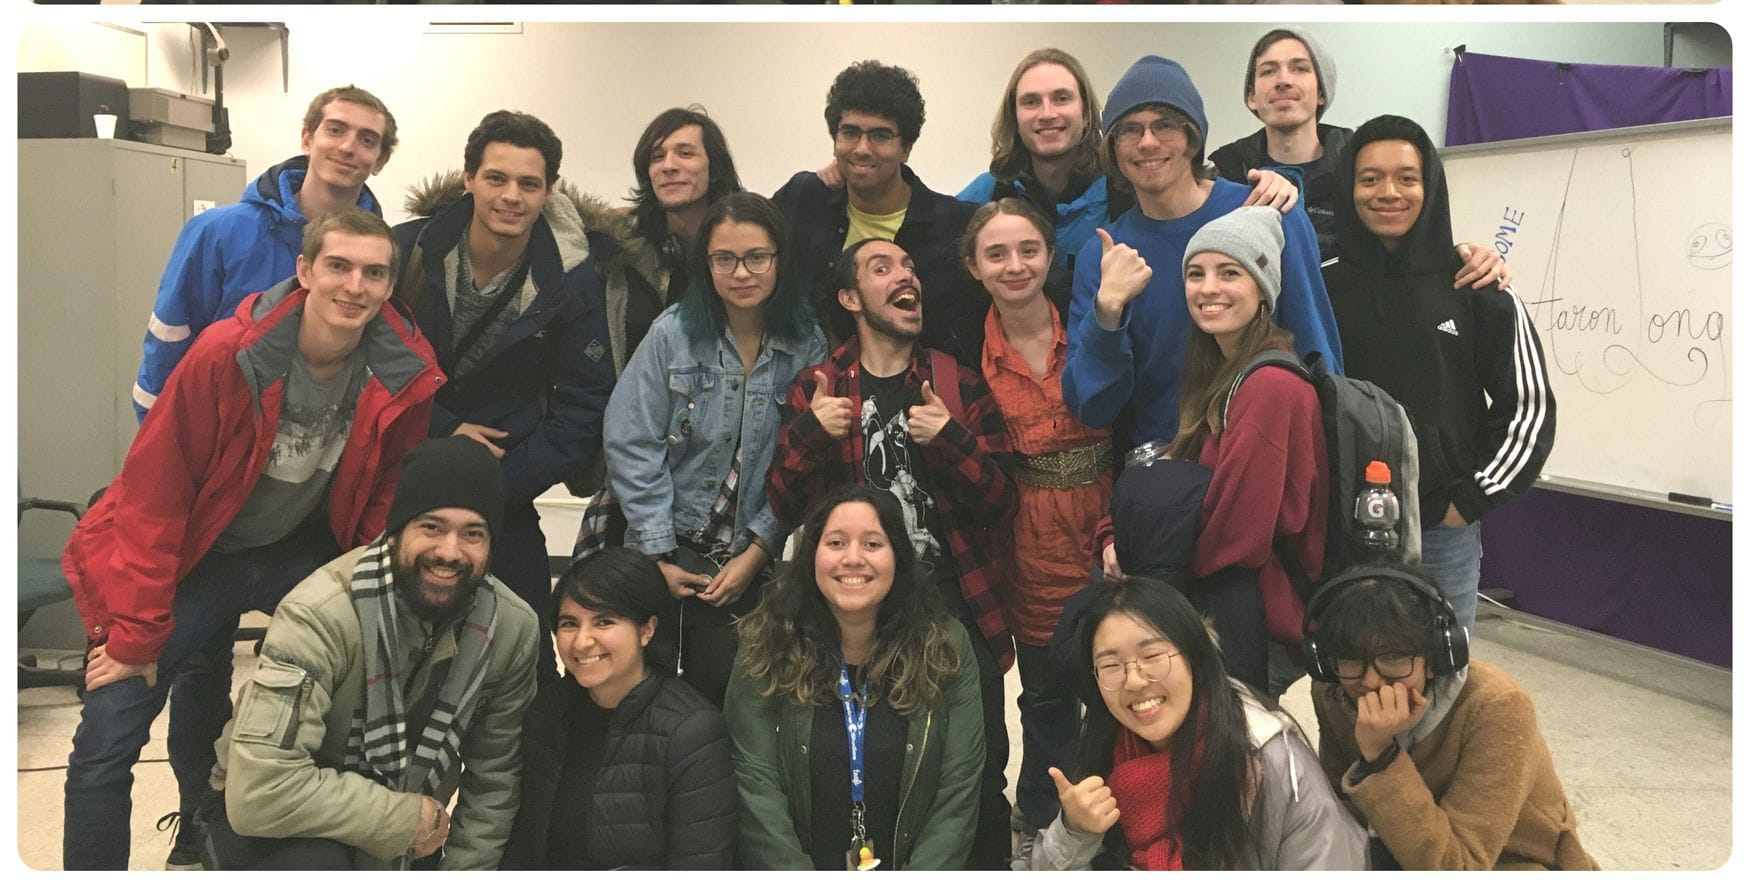 Aaron Long Animator and Director, visits student at Alma Mater, Max the Mutt